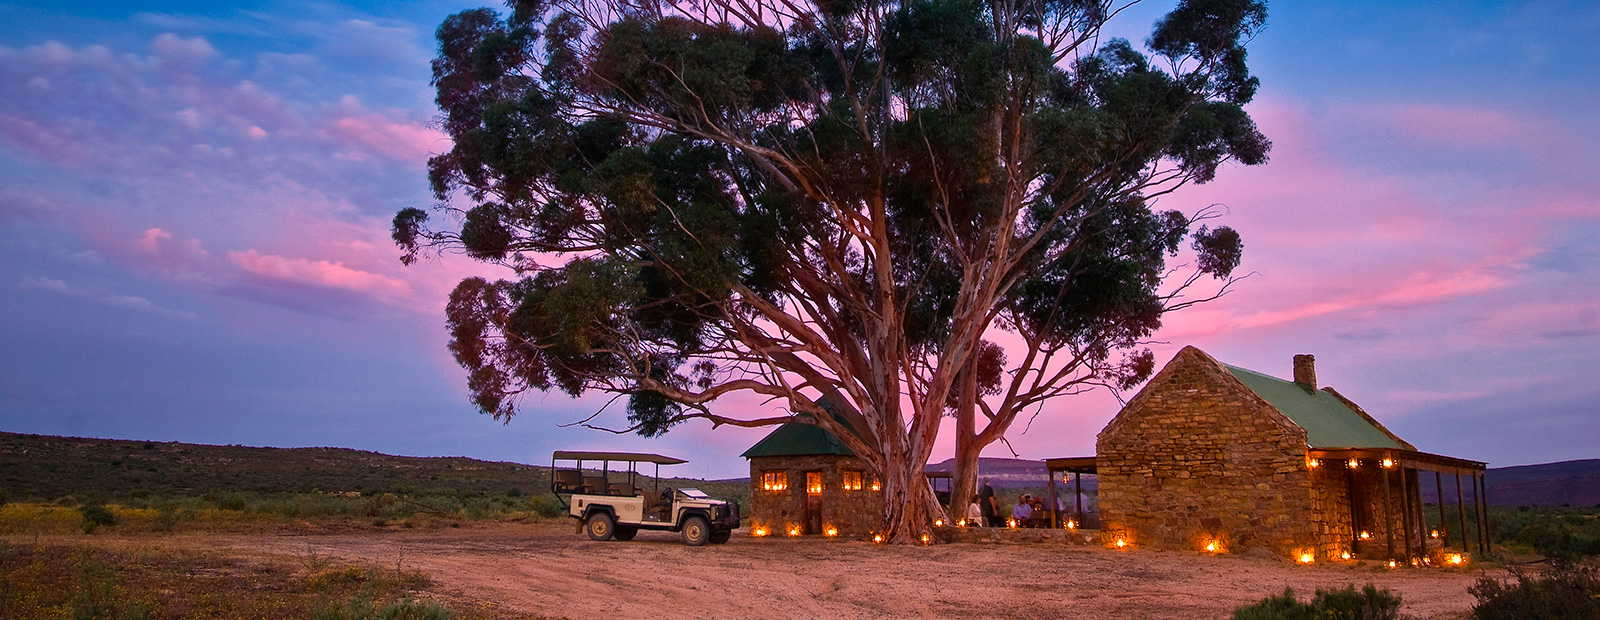 Exklusive Safari-Lodges in Südafrika